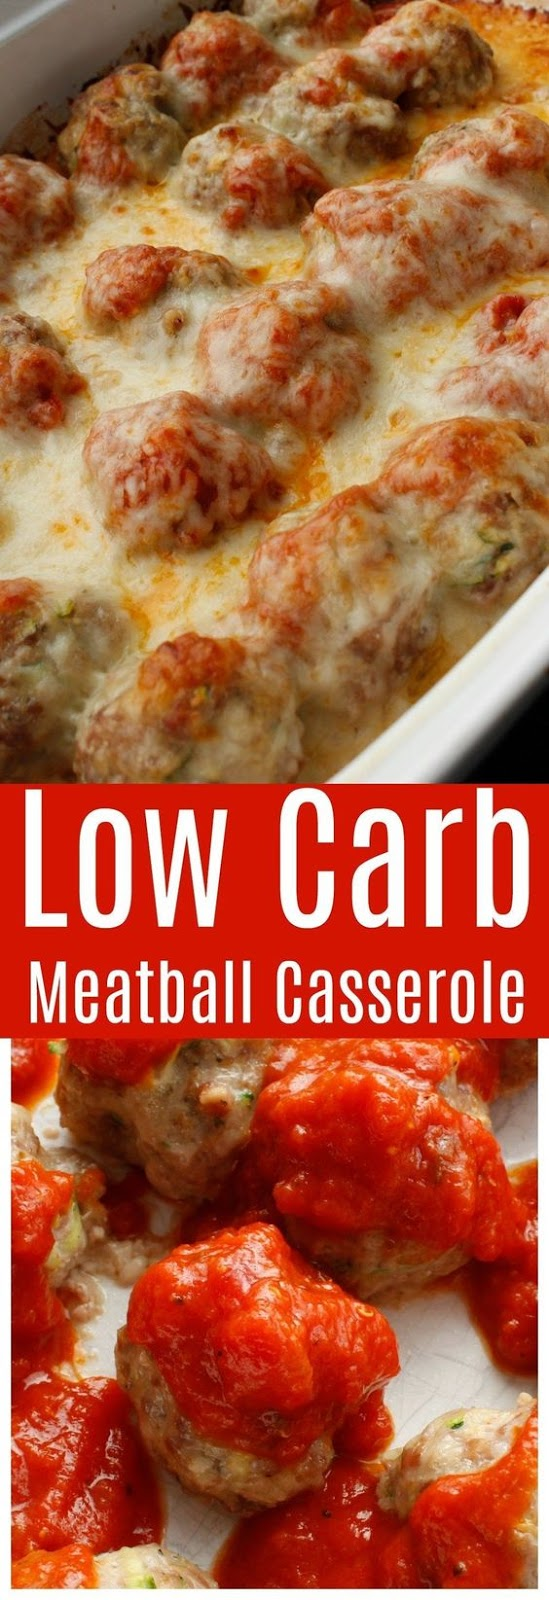 Low Carb Meatball Casserole